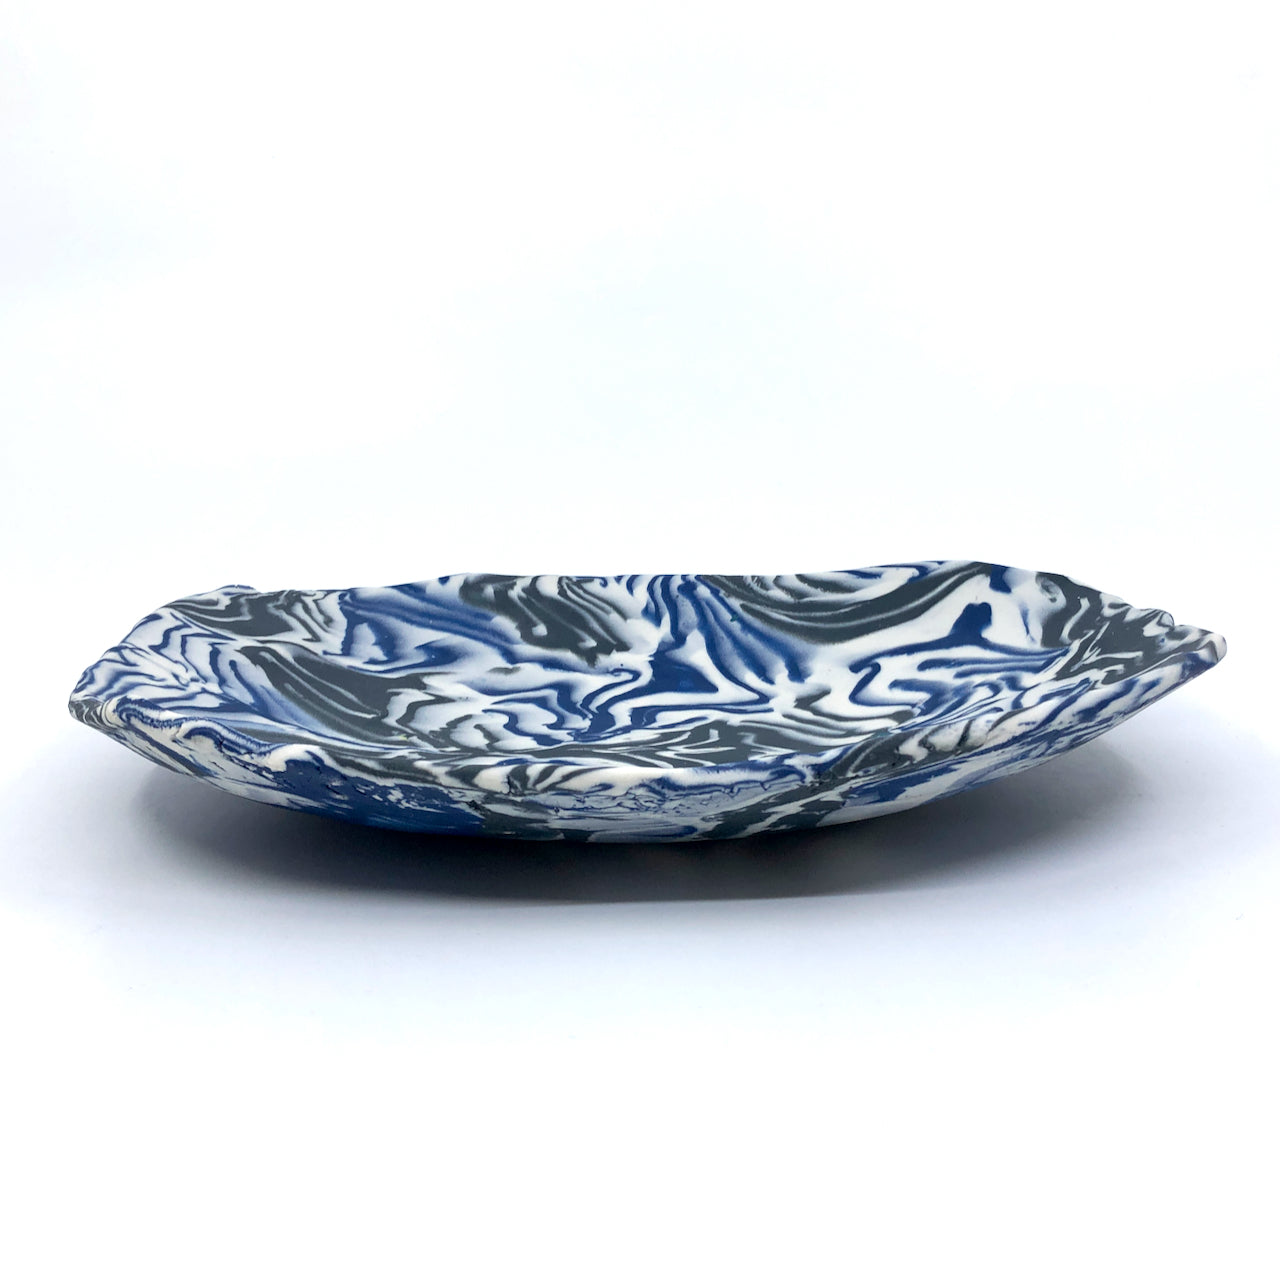 Black & Blue Marbled Medium Display Platter